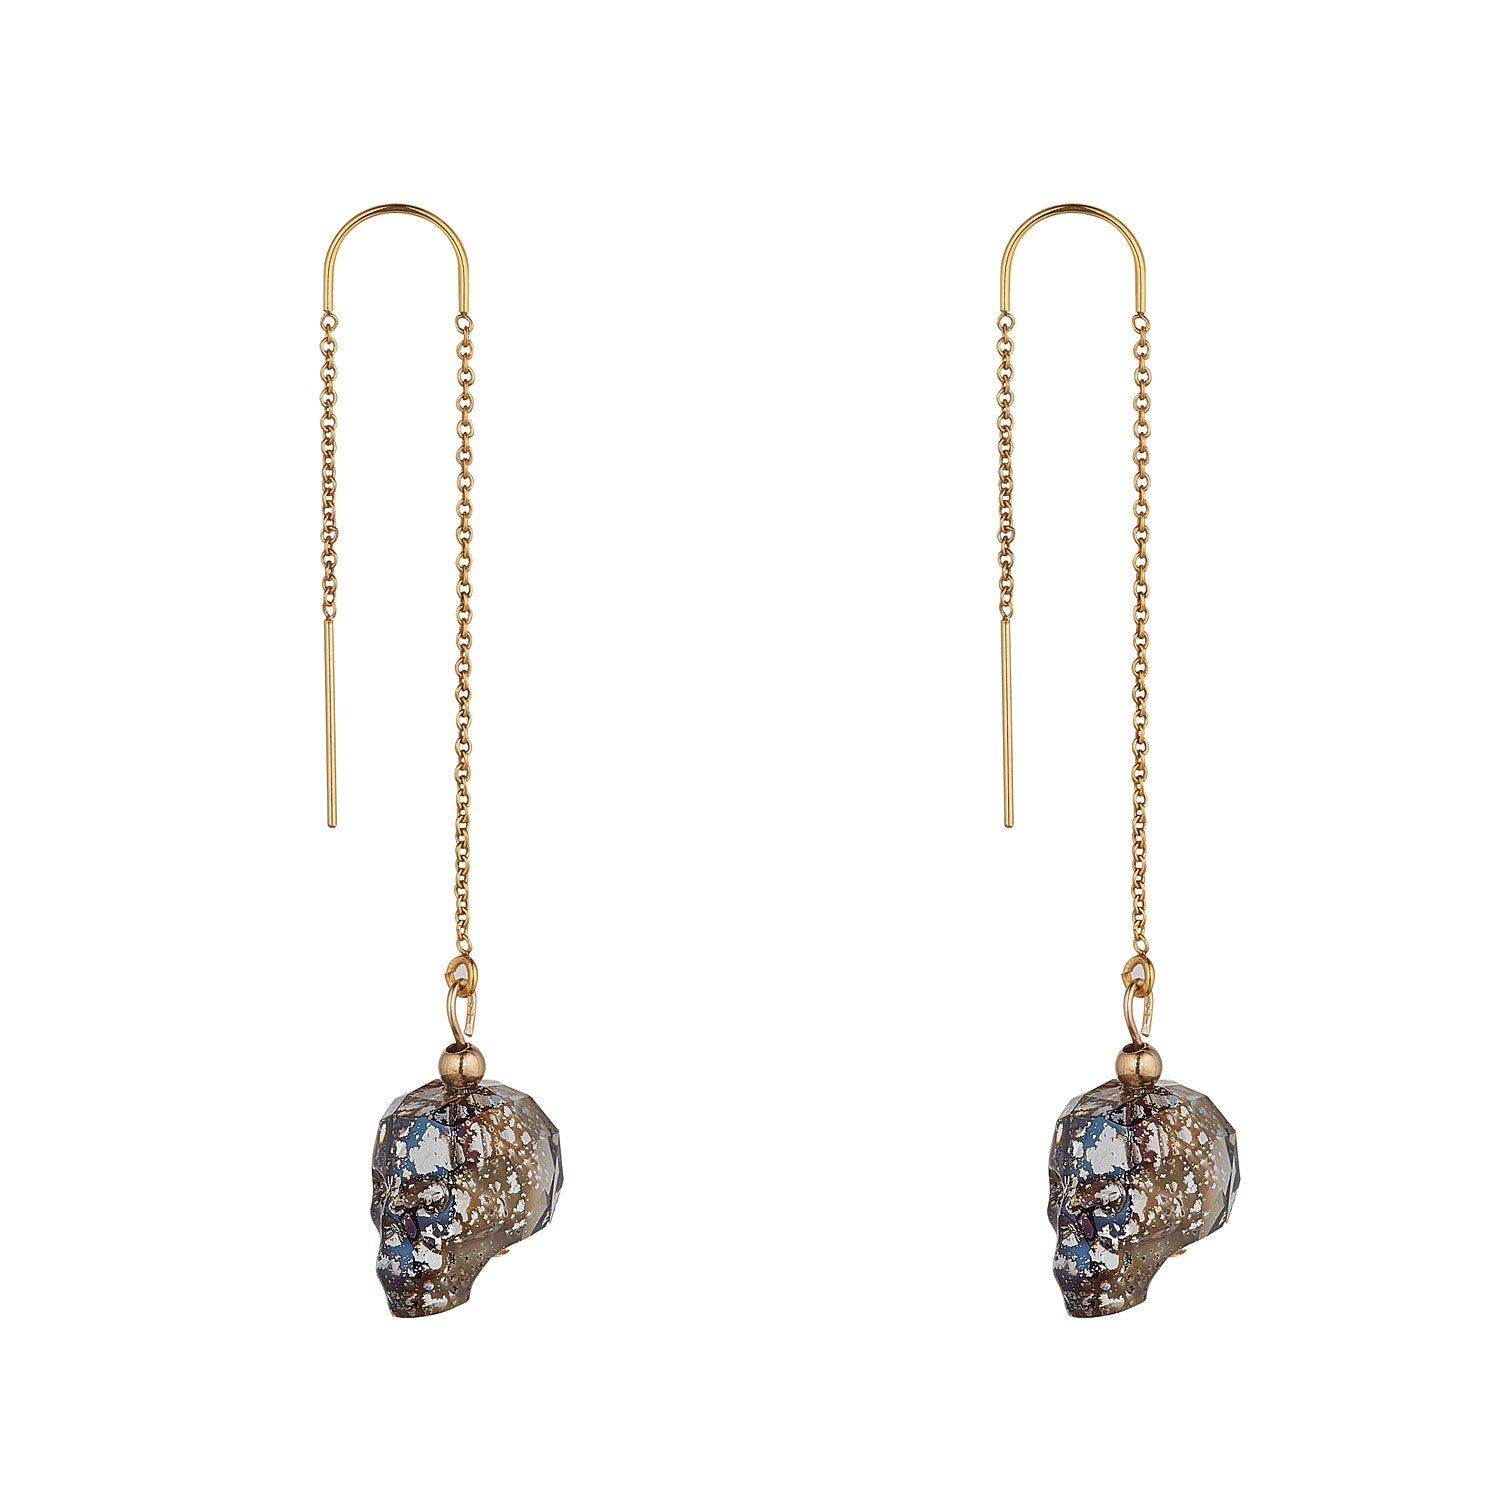 14kt Gold Filled Black Patina Swarovski Skull Threaders - MoMuse Jewellery